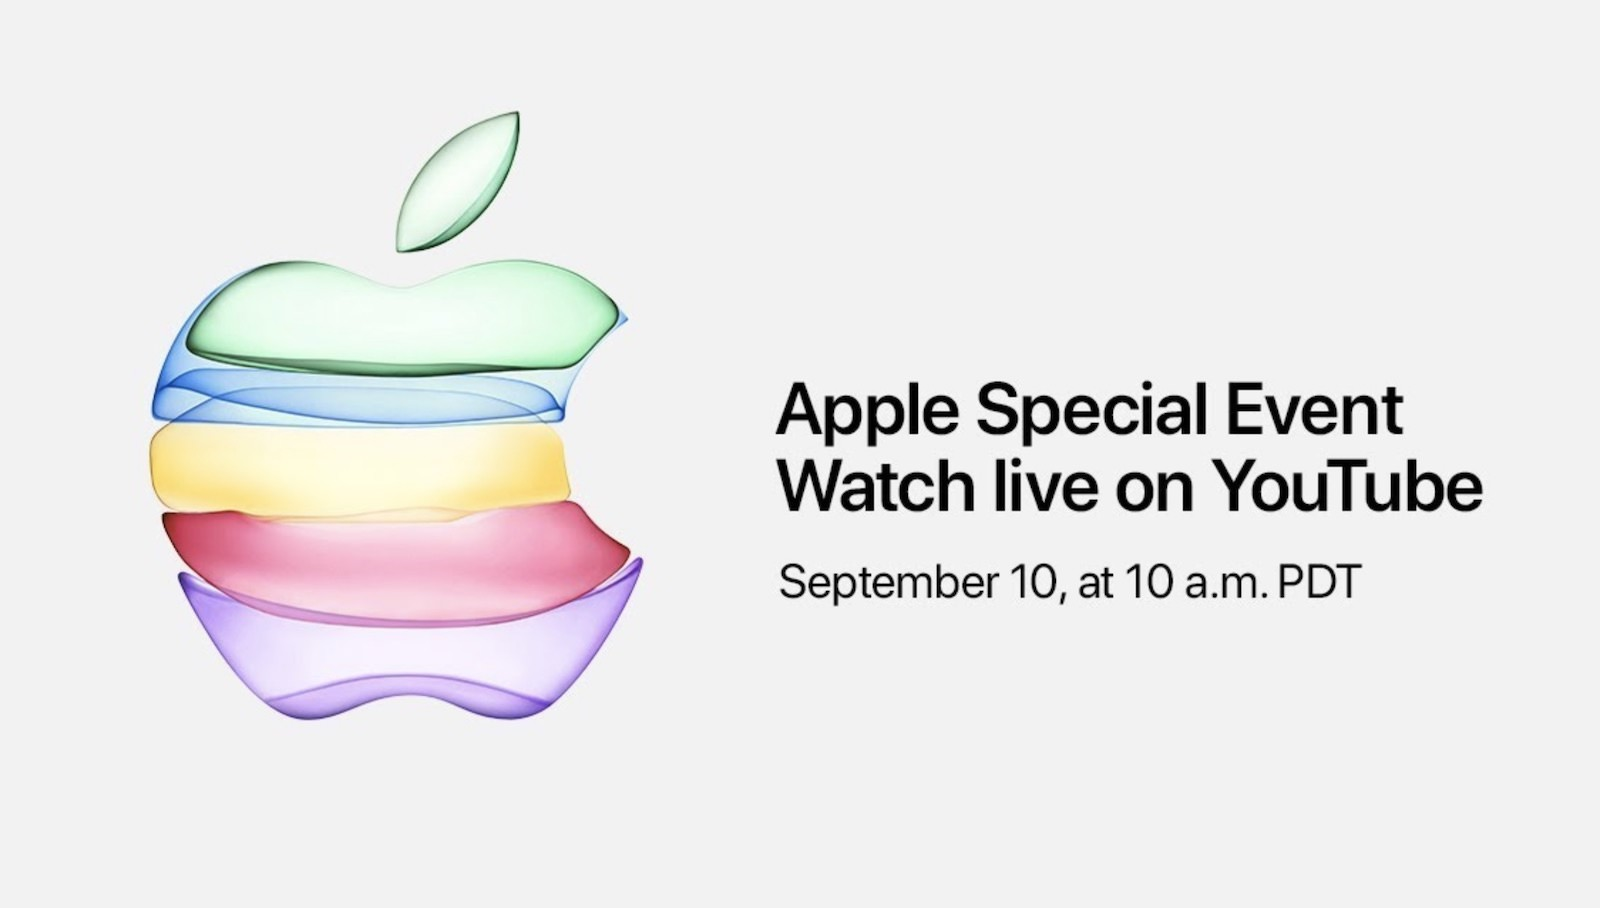 Apple-Special-Event-Live-on-YouTube.jpg